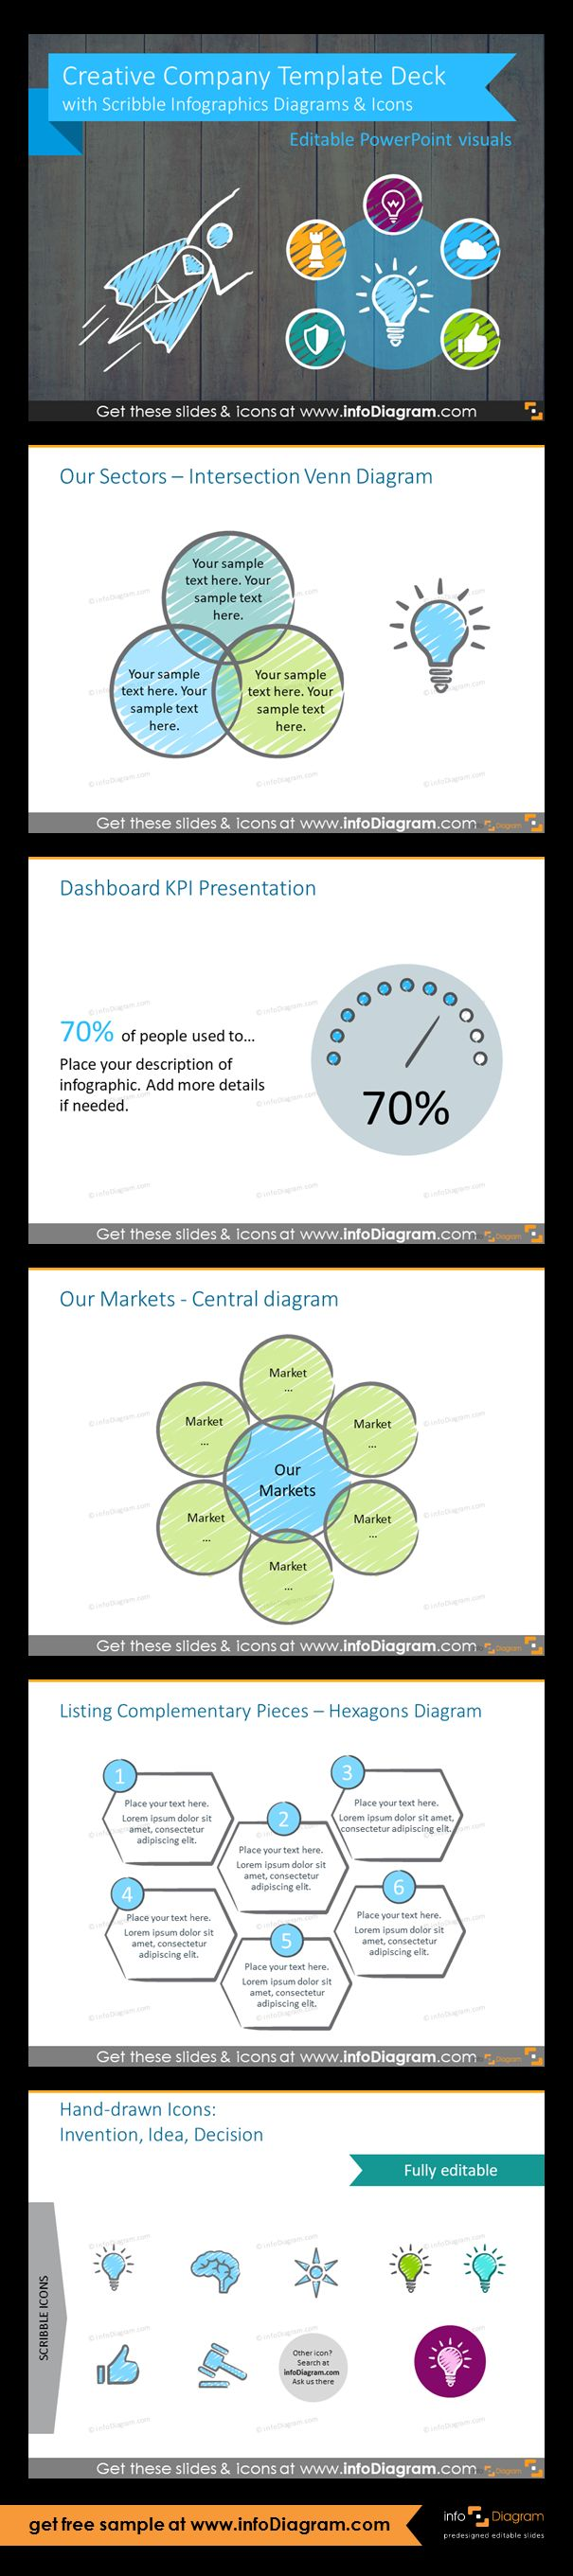 Best 25 venn diagram examples ideas on pinterest its funny this ppt deck includes the best presentation layout examples we also apply in our slide design projects intersection venn diagram creative pooptronica